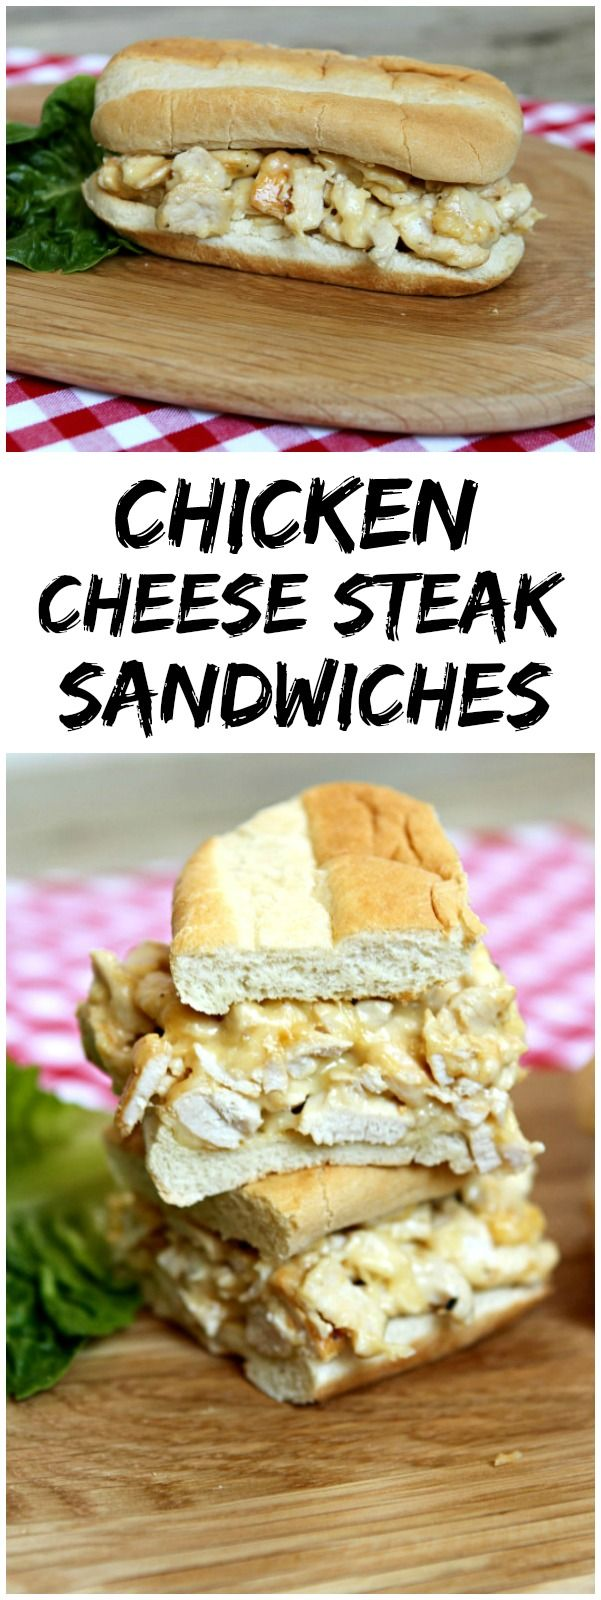 Easy Chicken Cheese Steak Sandwiches recipe - RecipeBoy.com : just like the classic Philly Cheese Steak sandwiches recipe but made with chicken instead!